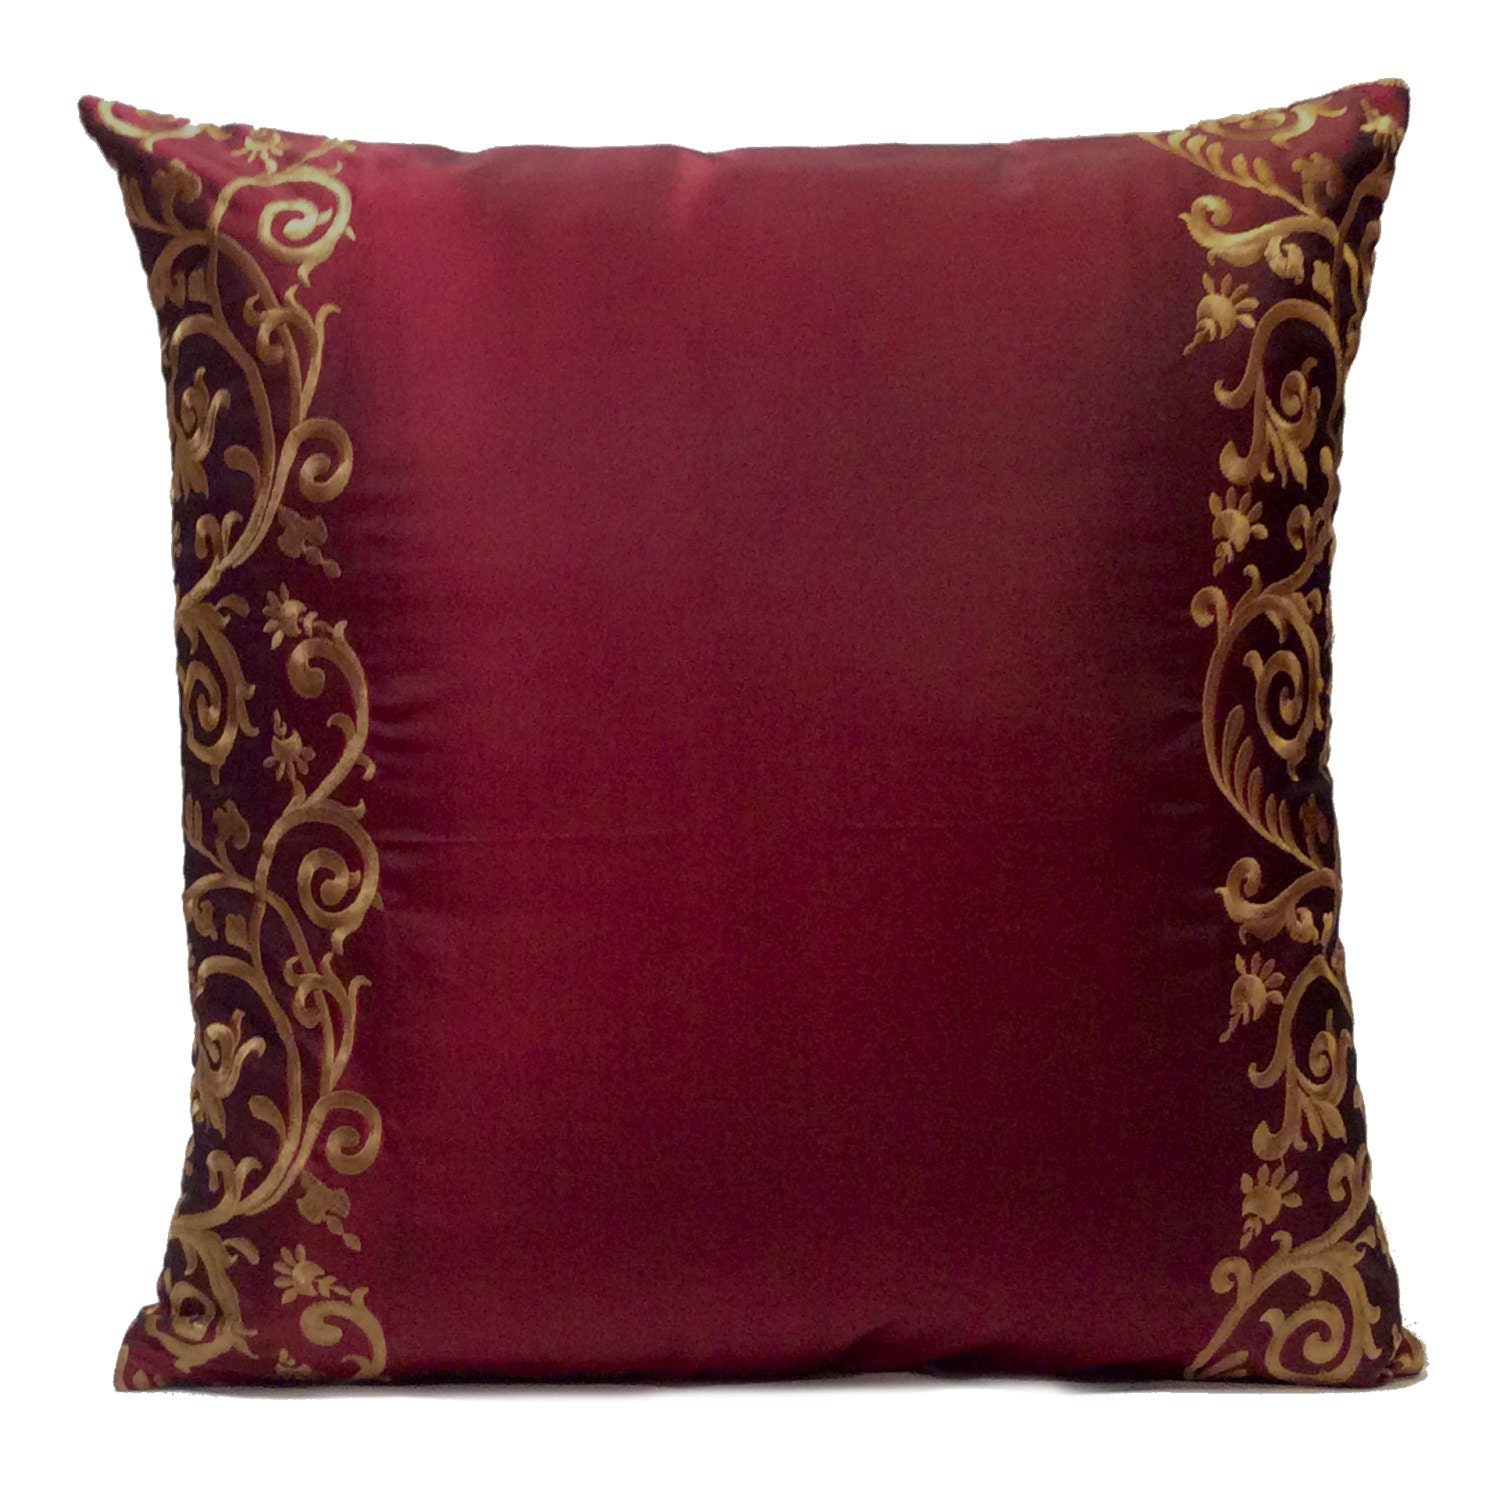 Burgundy pillow throw pillow cover decorative pillow cover for Decor pillows